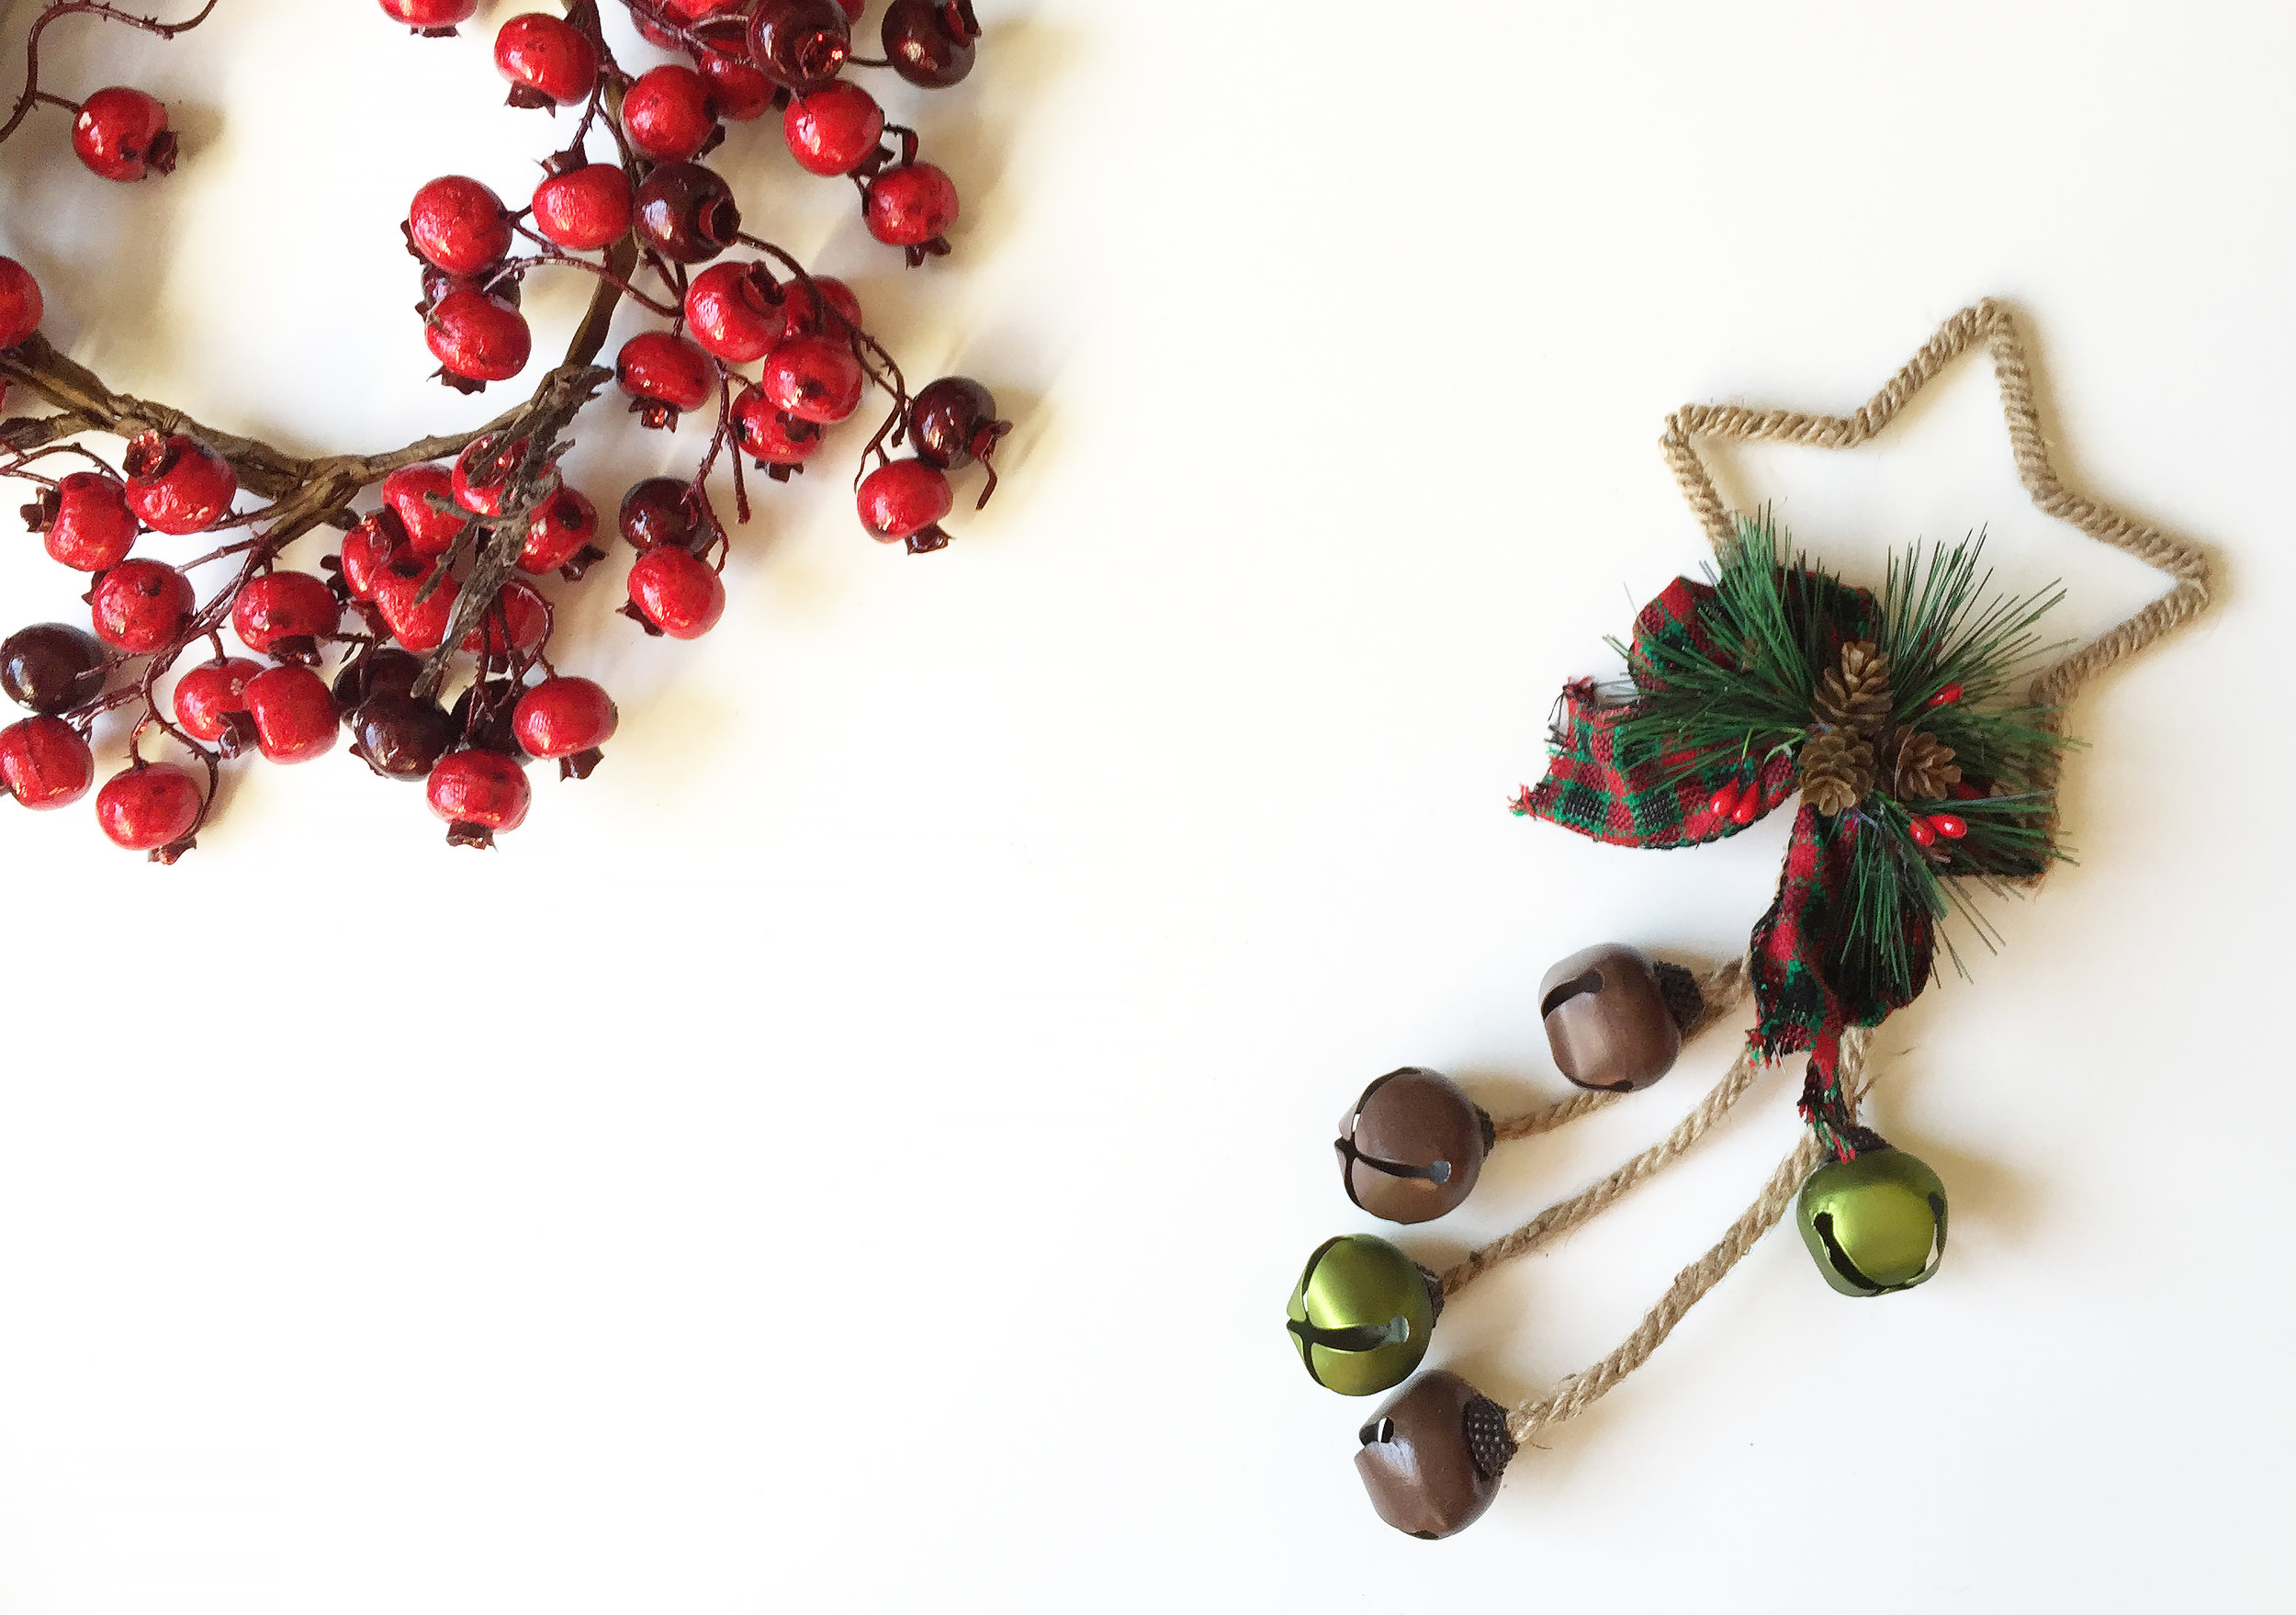 Free stock photos for Christmas, Holidays, December for Solopreneurs, Etsy shops, Bloggers